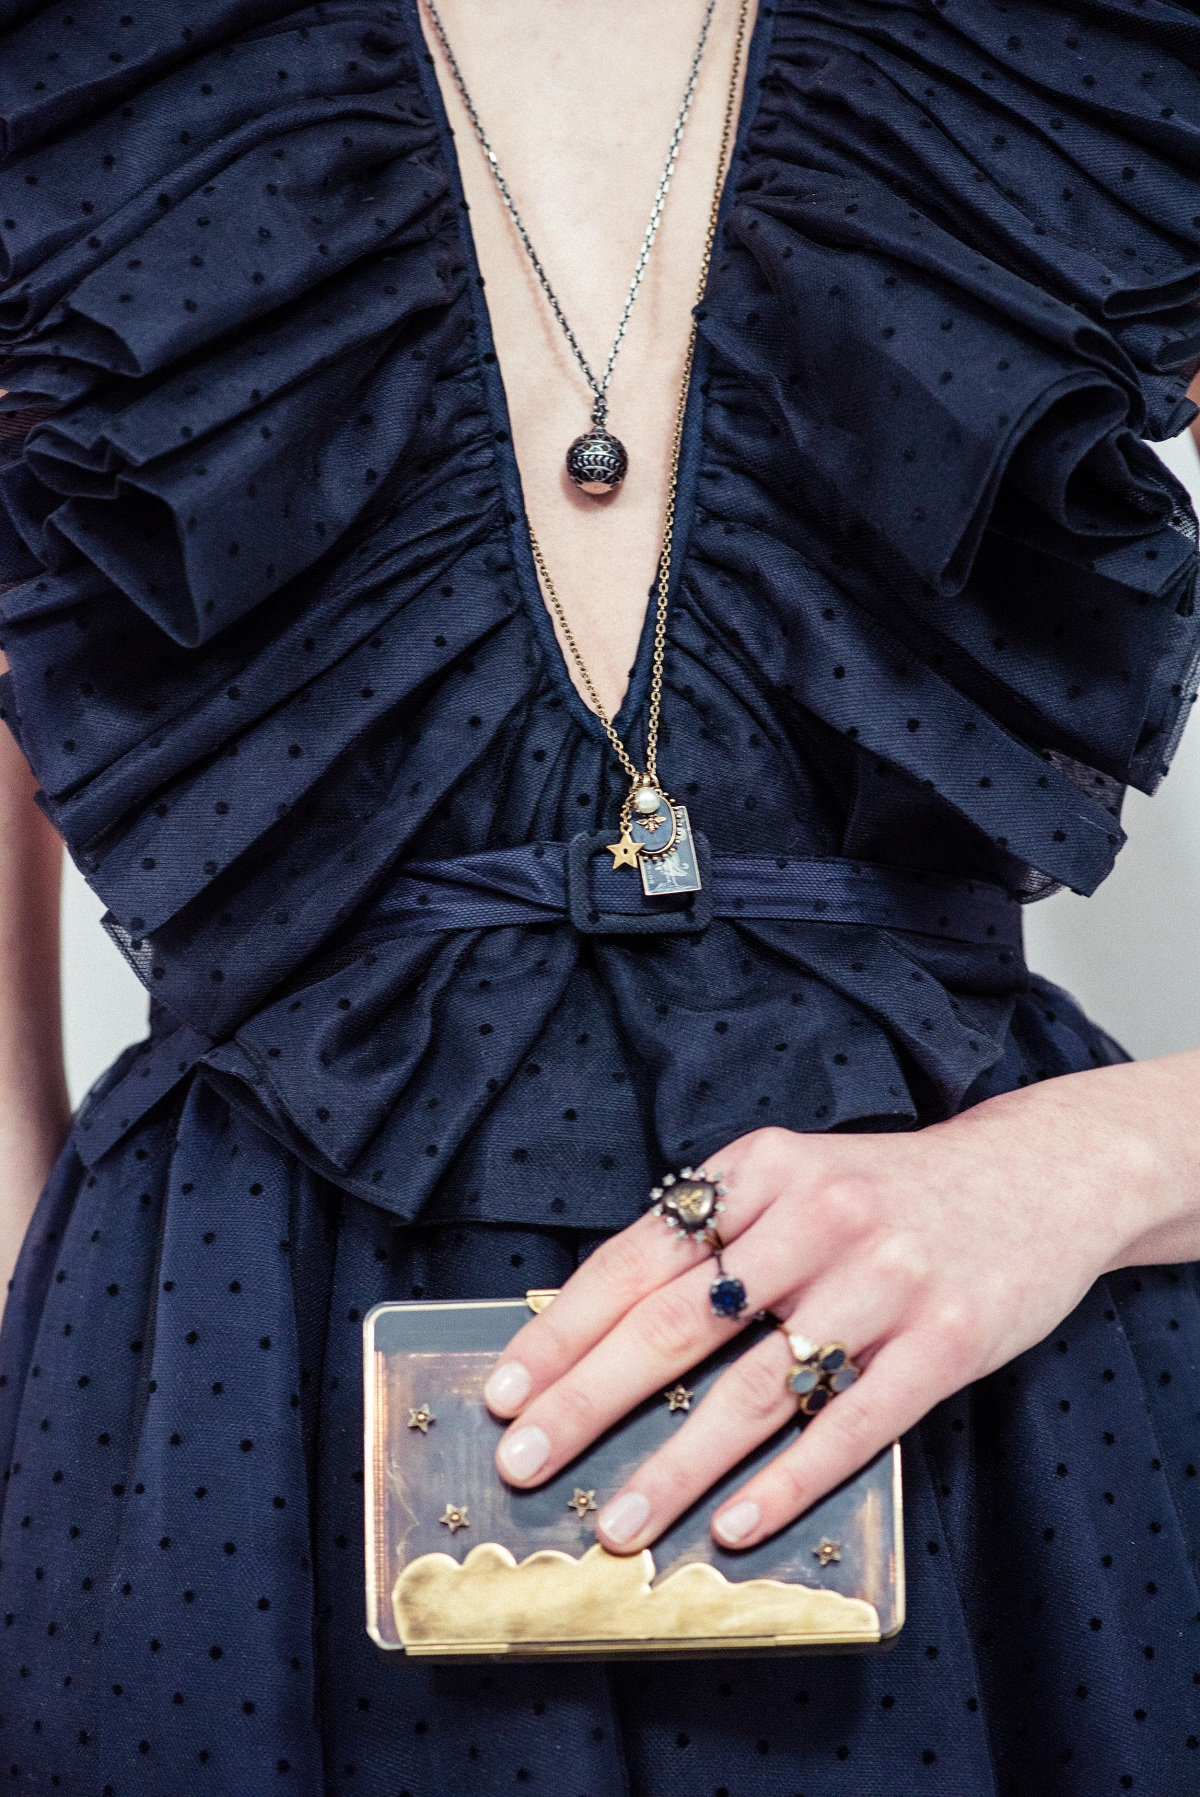 Dior_Costume_Jewelry_2018_Fashionela (6)